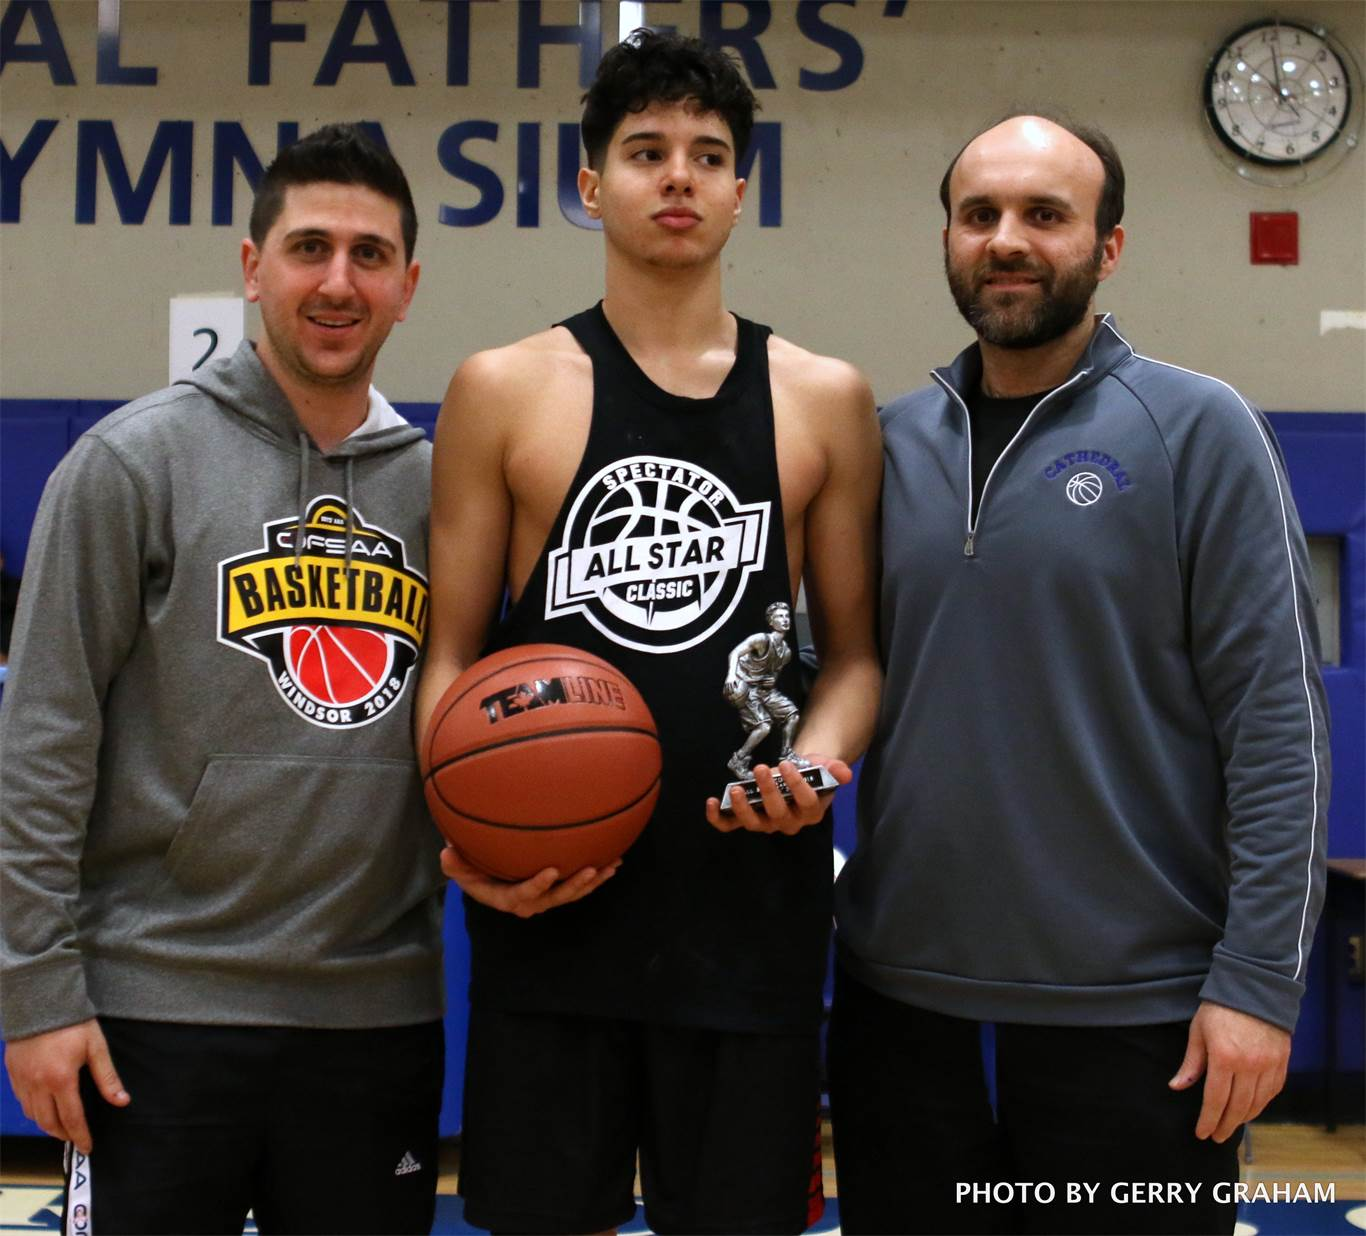 Diar Alkaldy, who represented the St. Thomas More Knights, was selected the contest's Most Valuable Player. From left to right, Jae Dunphy, Alkaldy, Mario Susi. Photo by Gerry Graham,